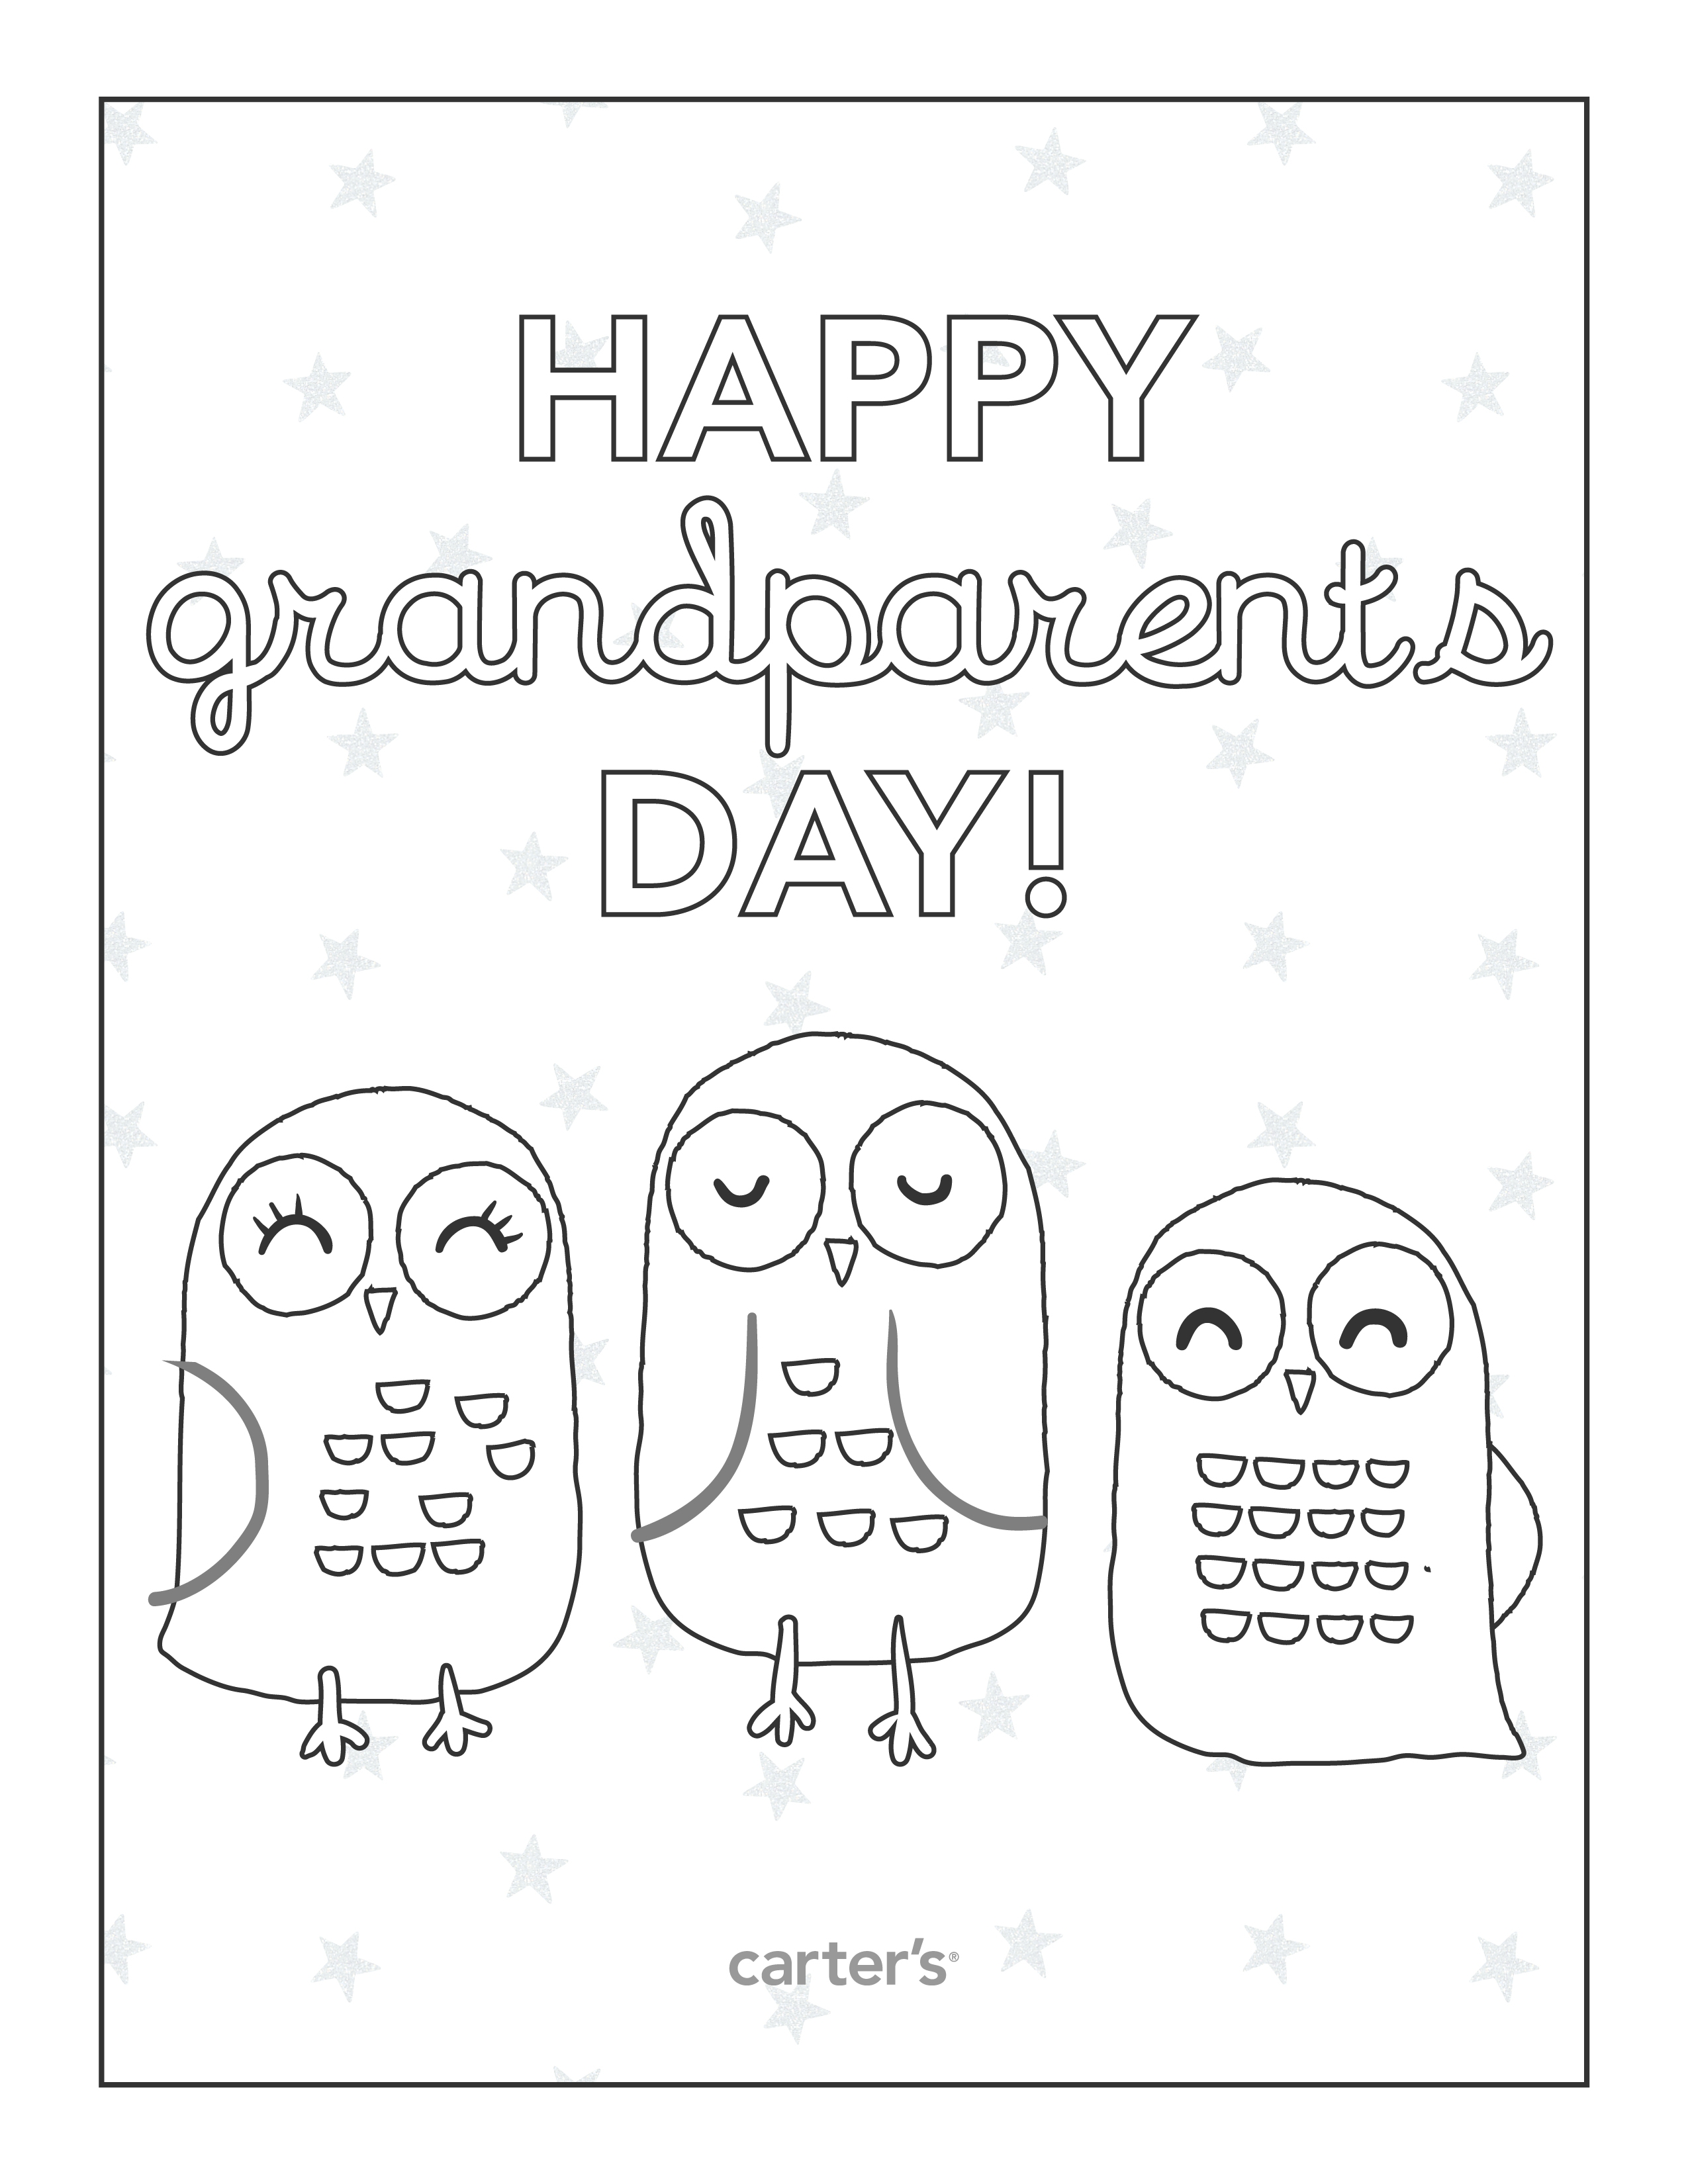 Grandparents day coloring pages to download and print for free